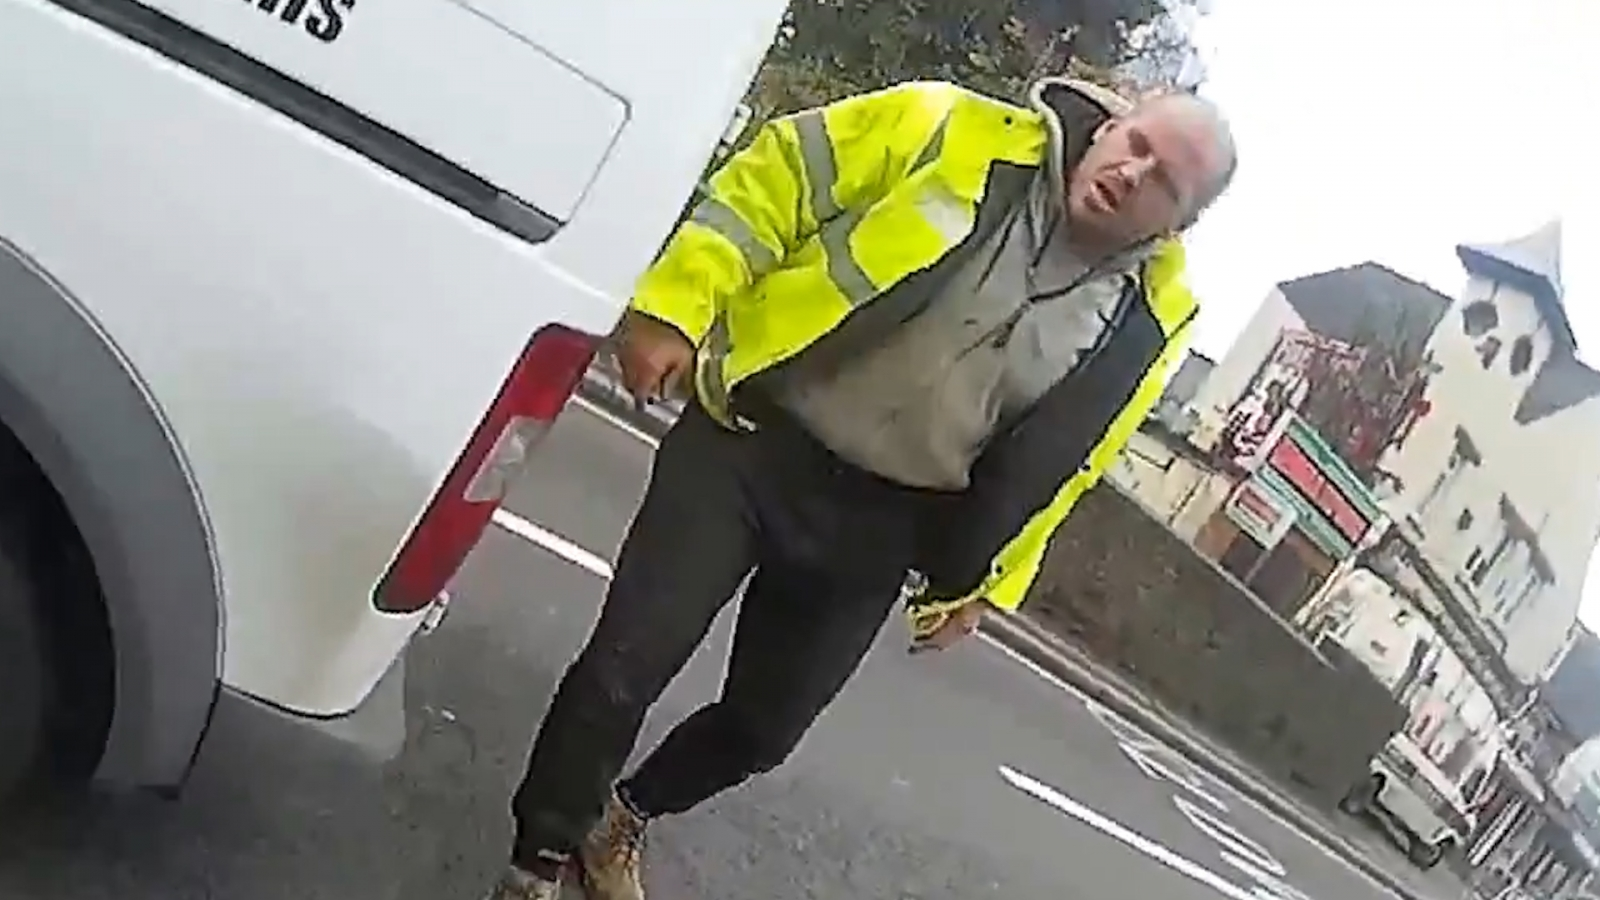 Shocking video shows cyclist knocked over and attacked by van driver